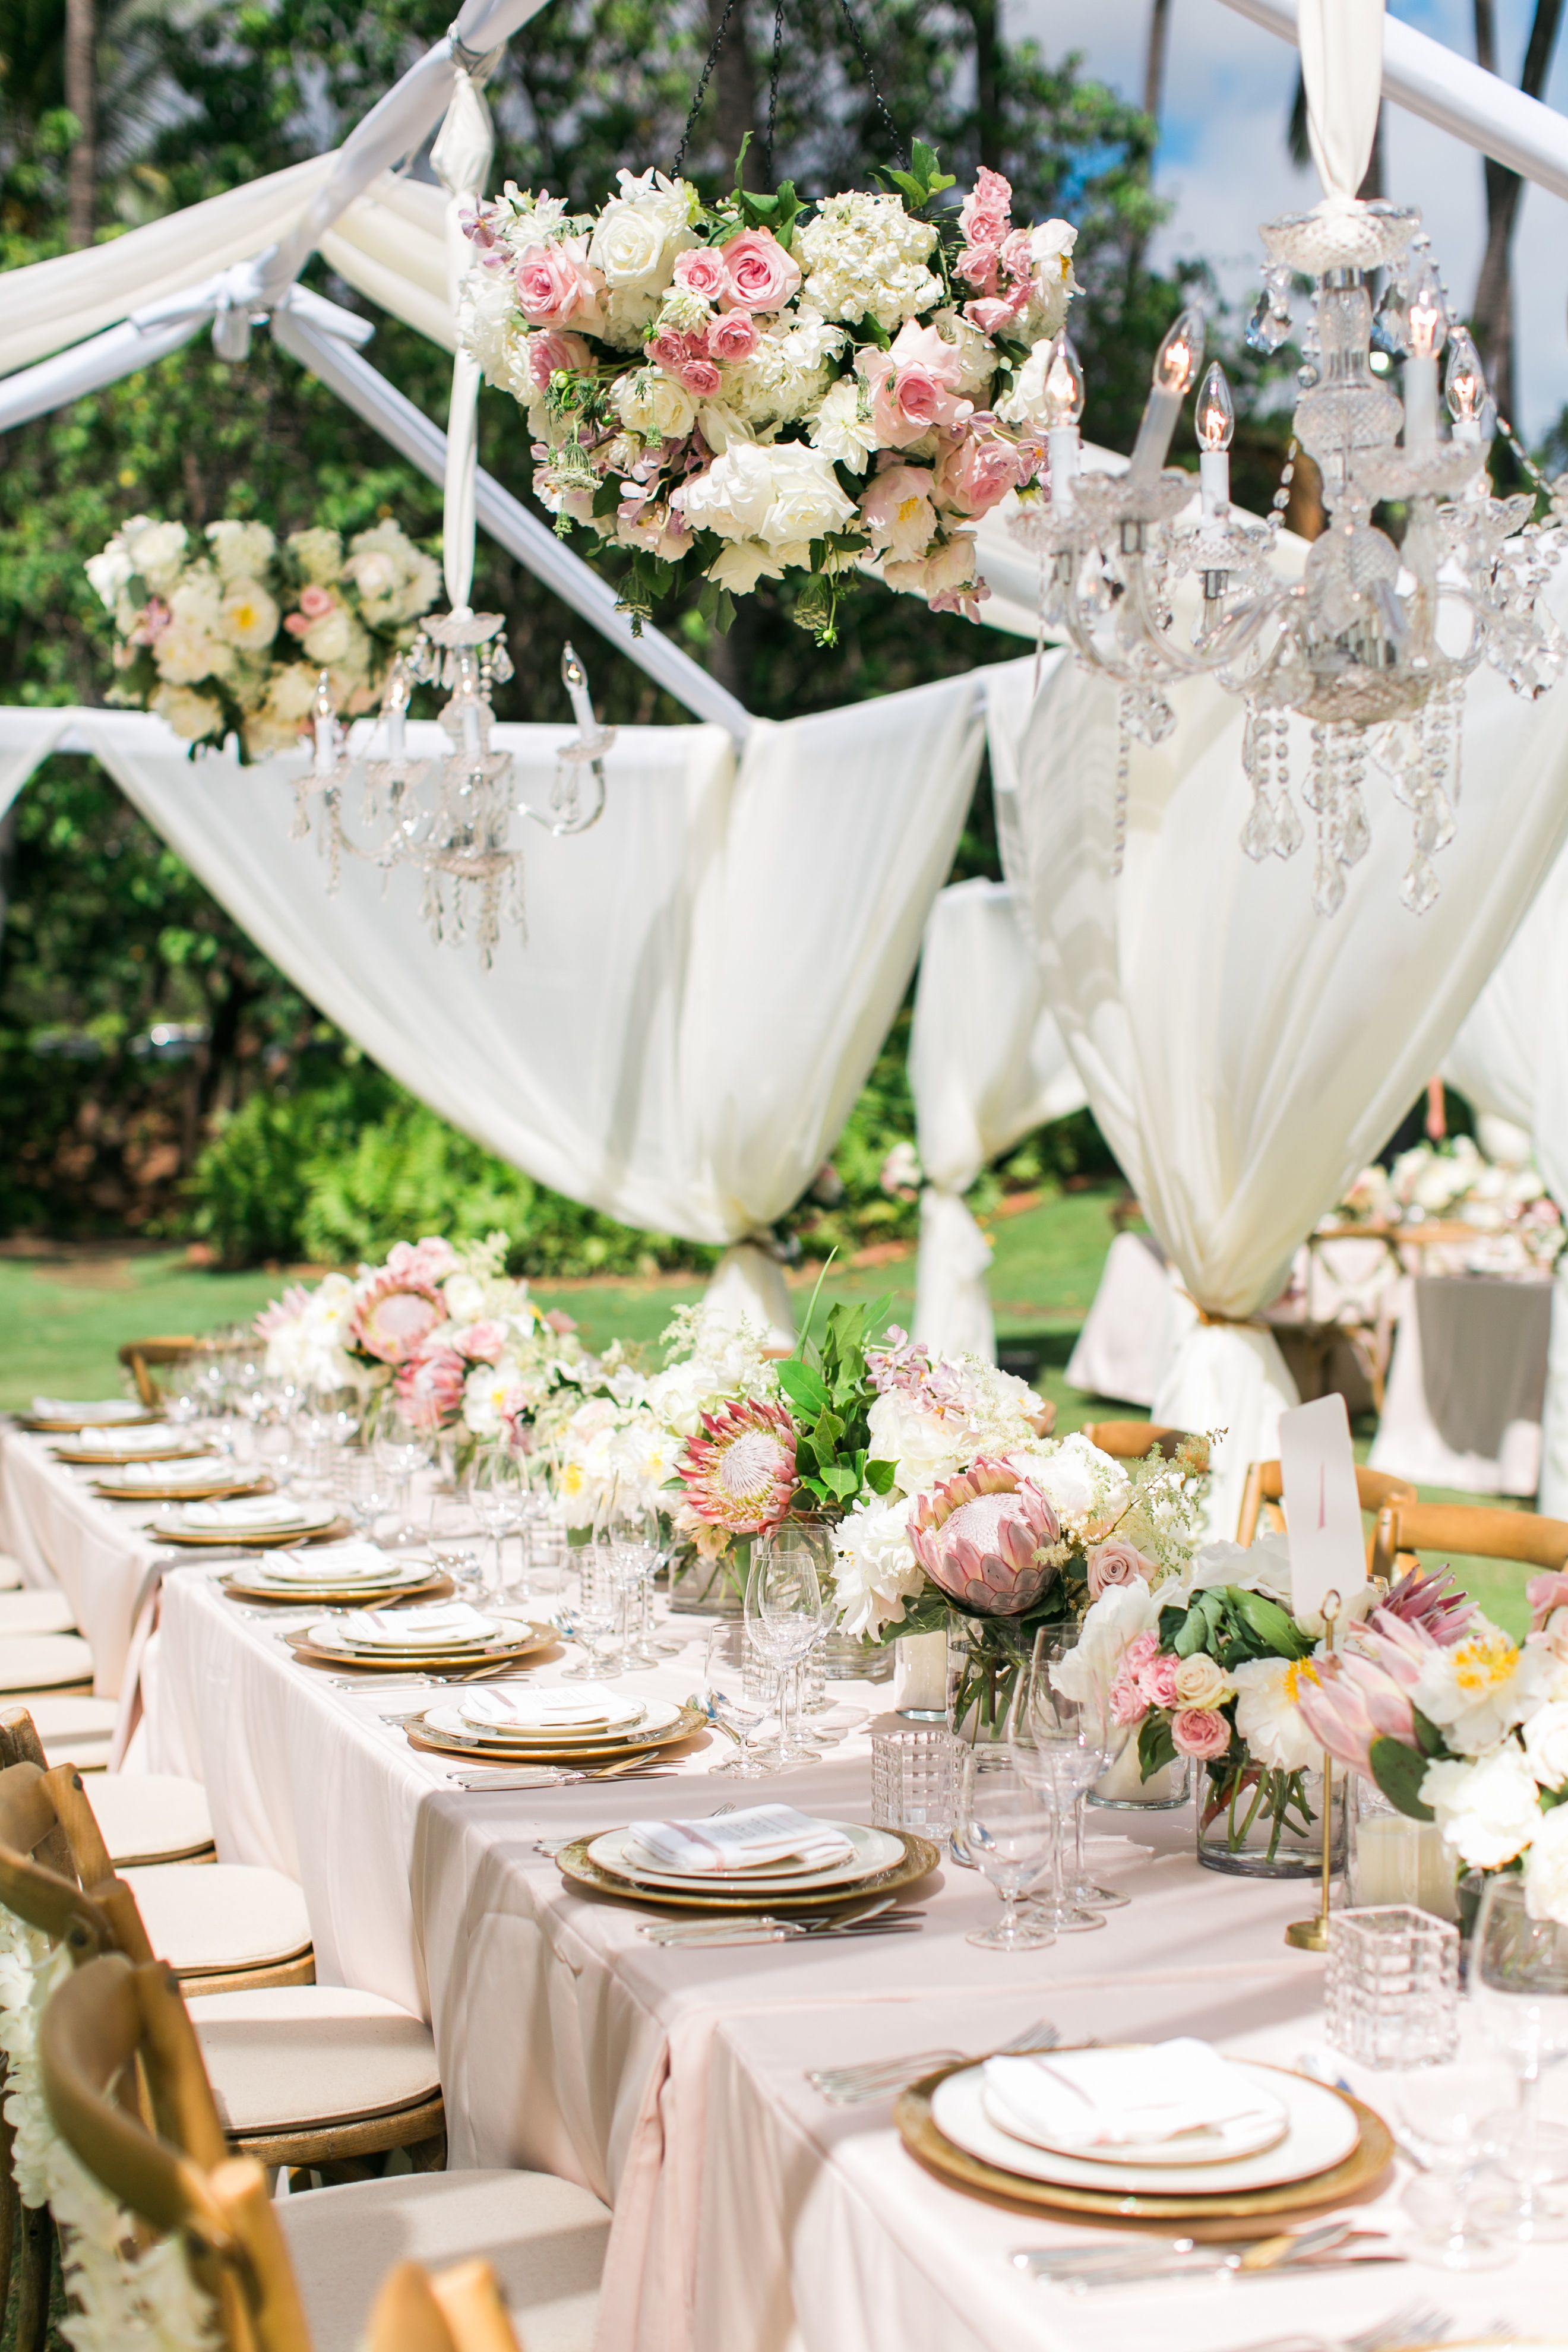 Dreamy Wedding Details by Moana Events...Chandeliers, Hanging Blooms ...